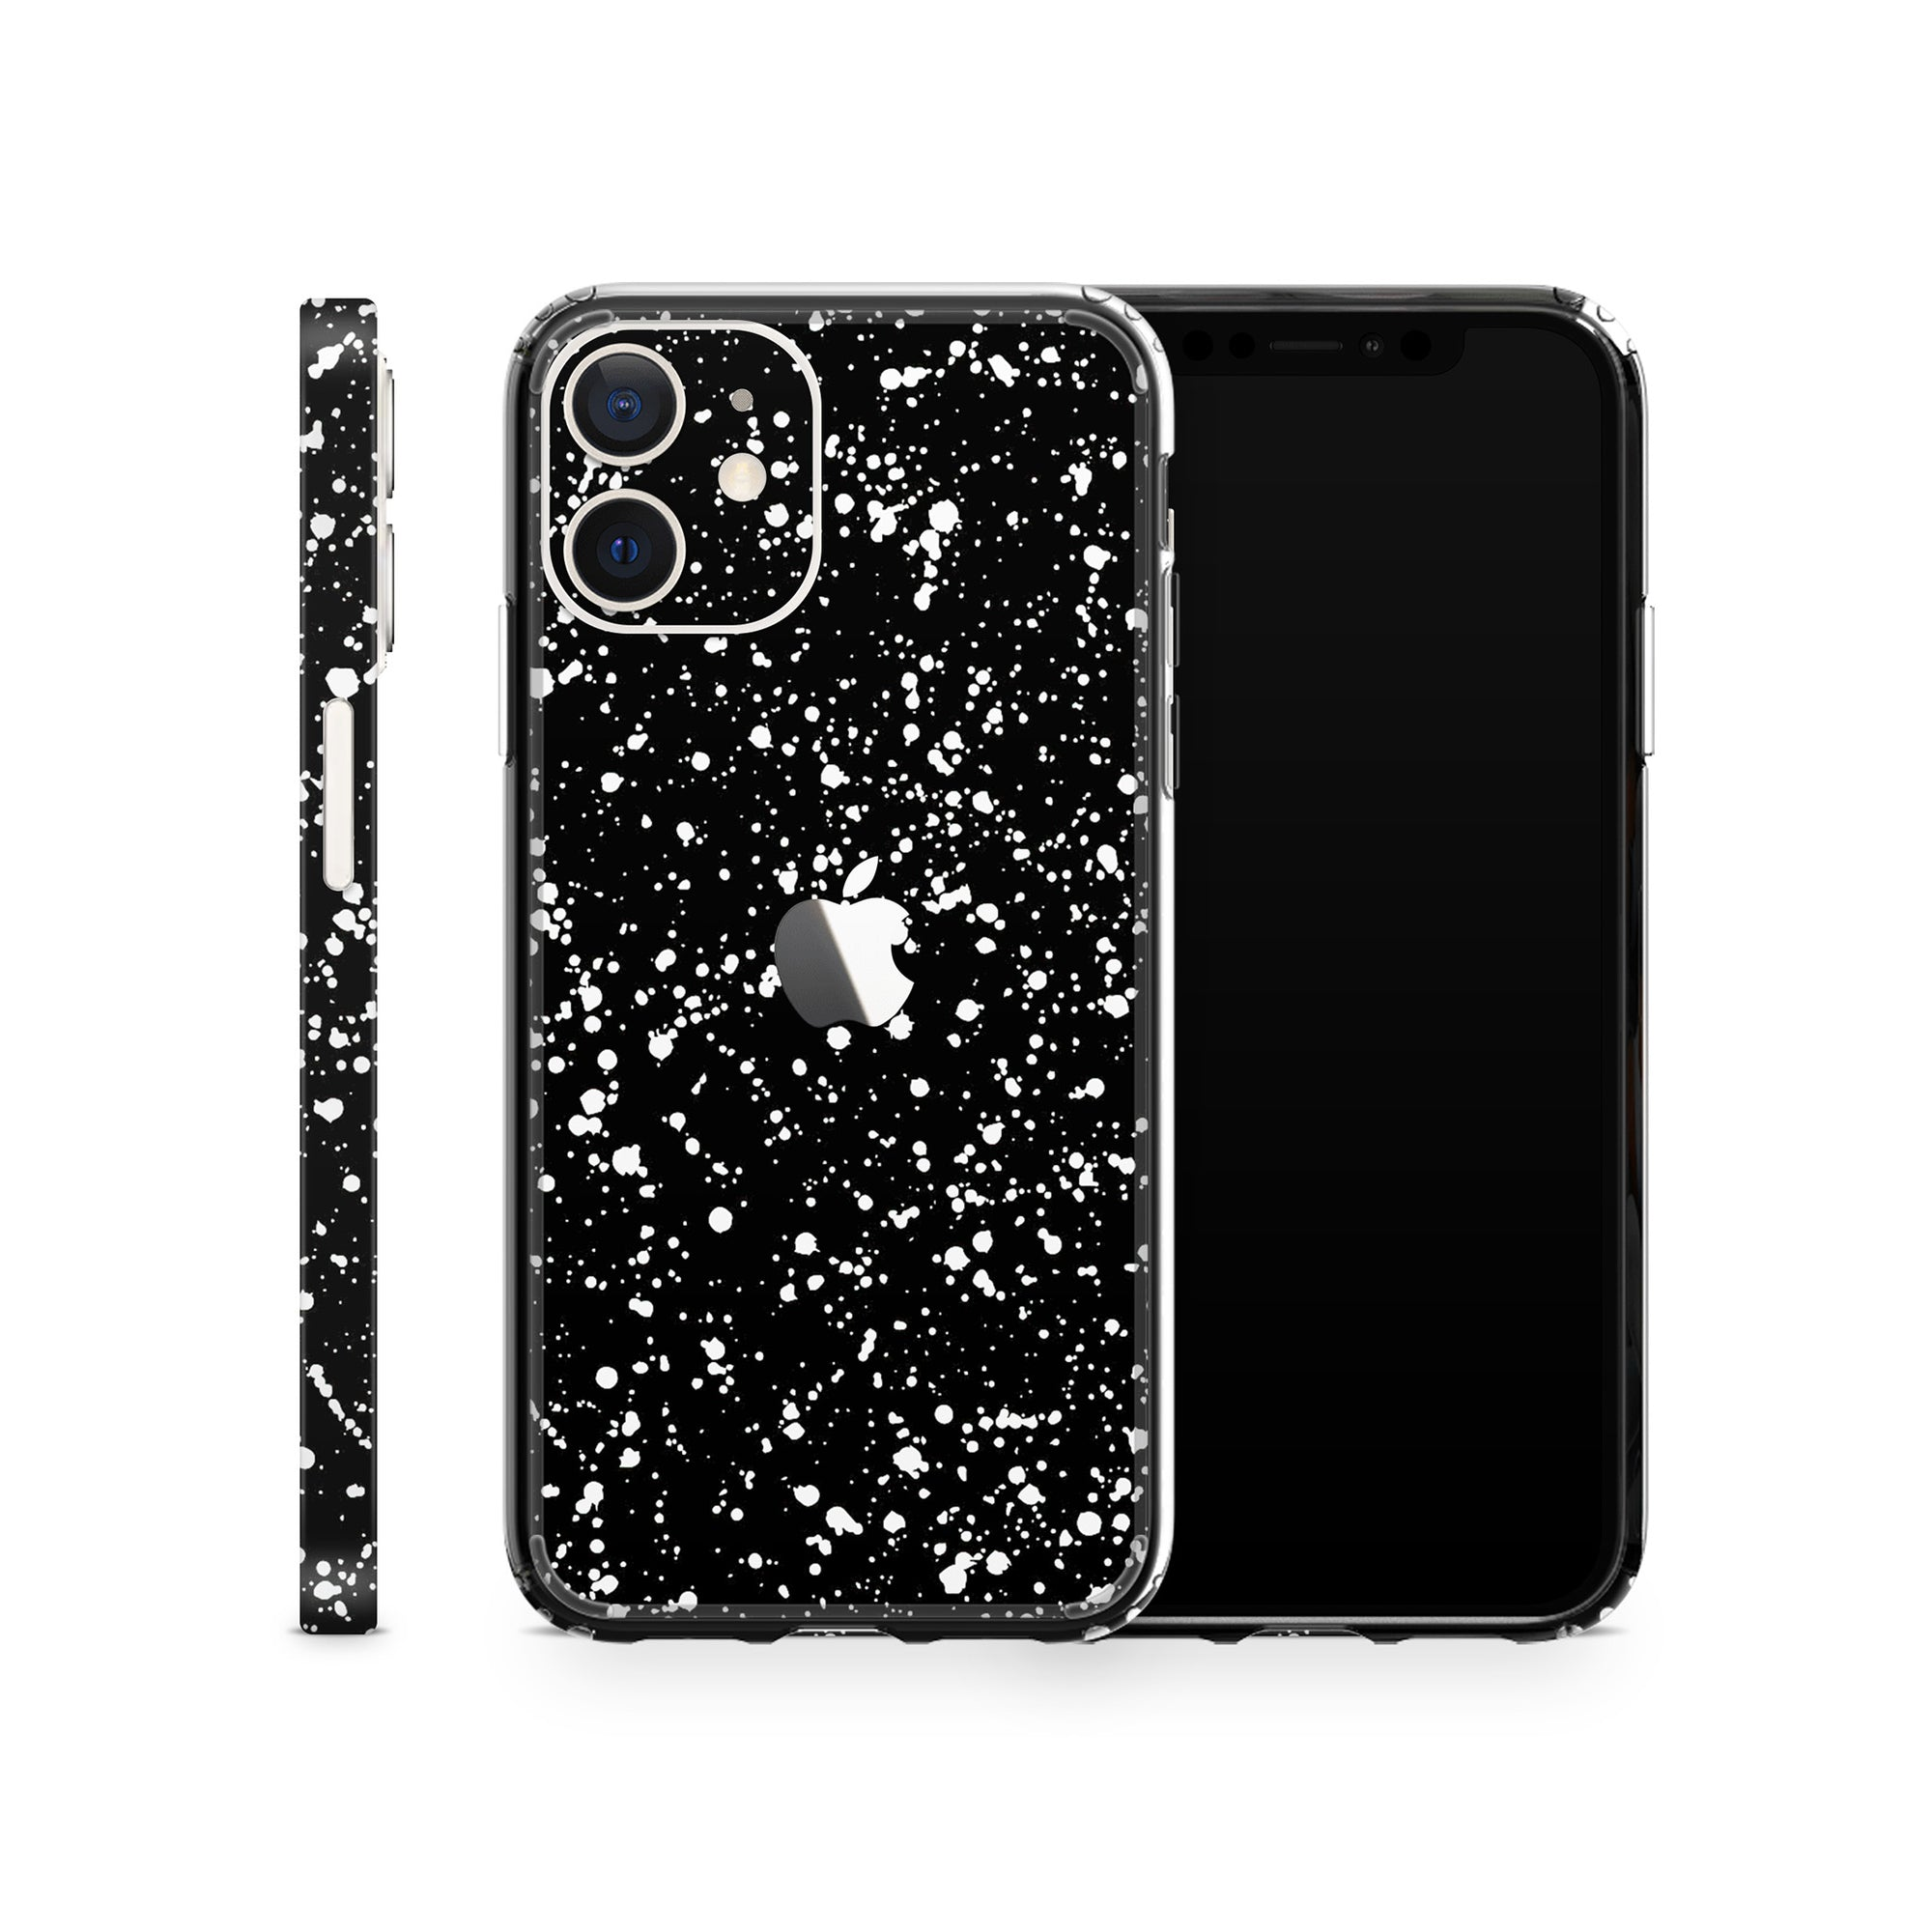 iPhone Case 12 Mini Black Speckle